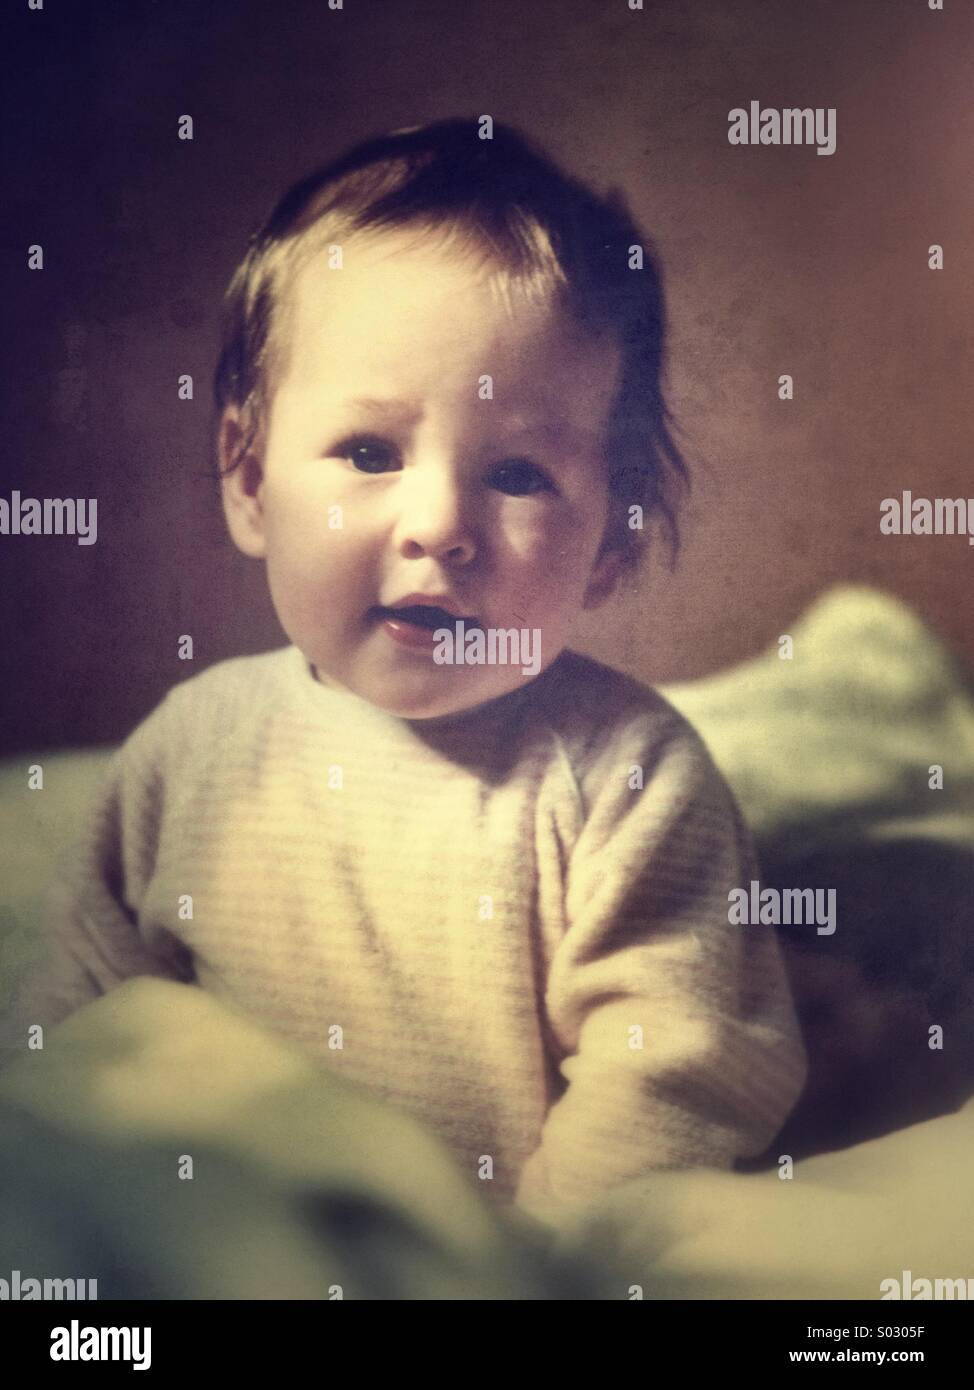 Baby aged 9-12 months sitting on bed - Stock Image